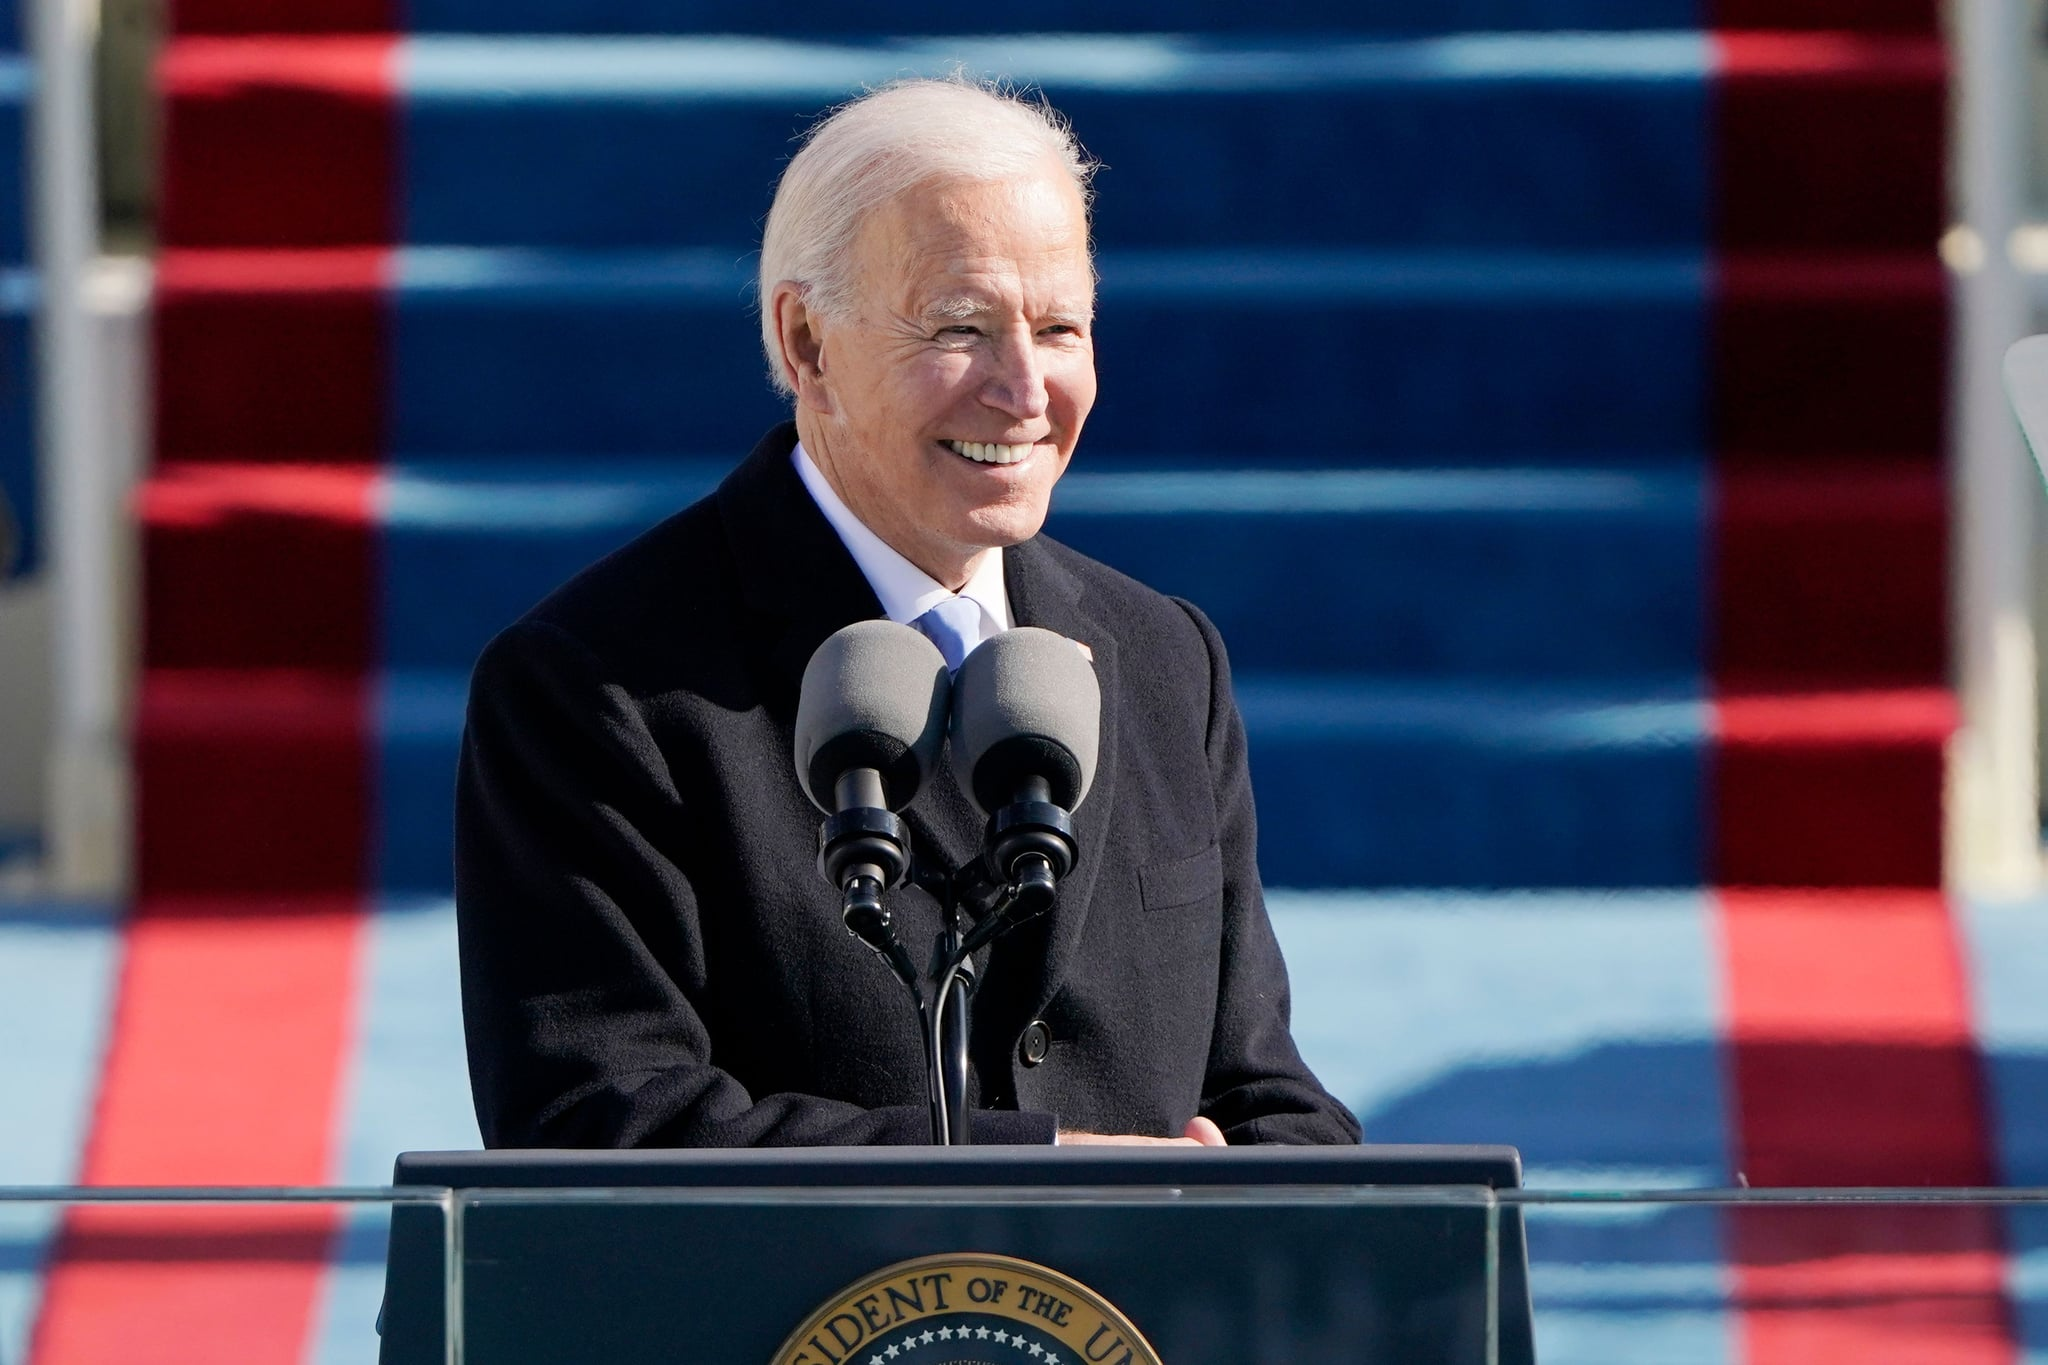 TOPSHOT - US President Joe Biden delivers his Inauguration speech after being sworn in as the 46th US President on January 20, 2021, at the US Capitol in Washington, DC. (Photo by Patrick Semansky / POOL / AFP) (Photo by PATRICK SEMANSKY/POOL/AFP via Getty Images)